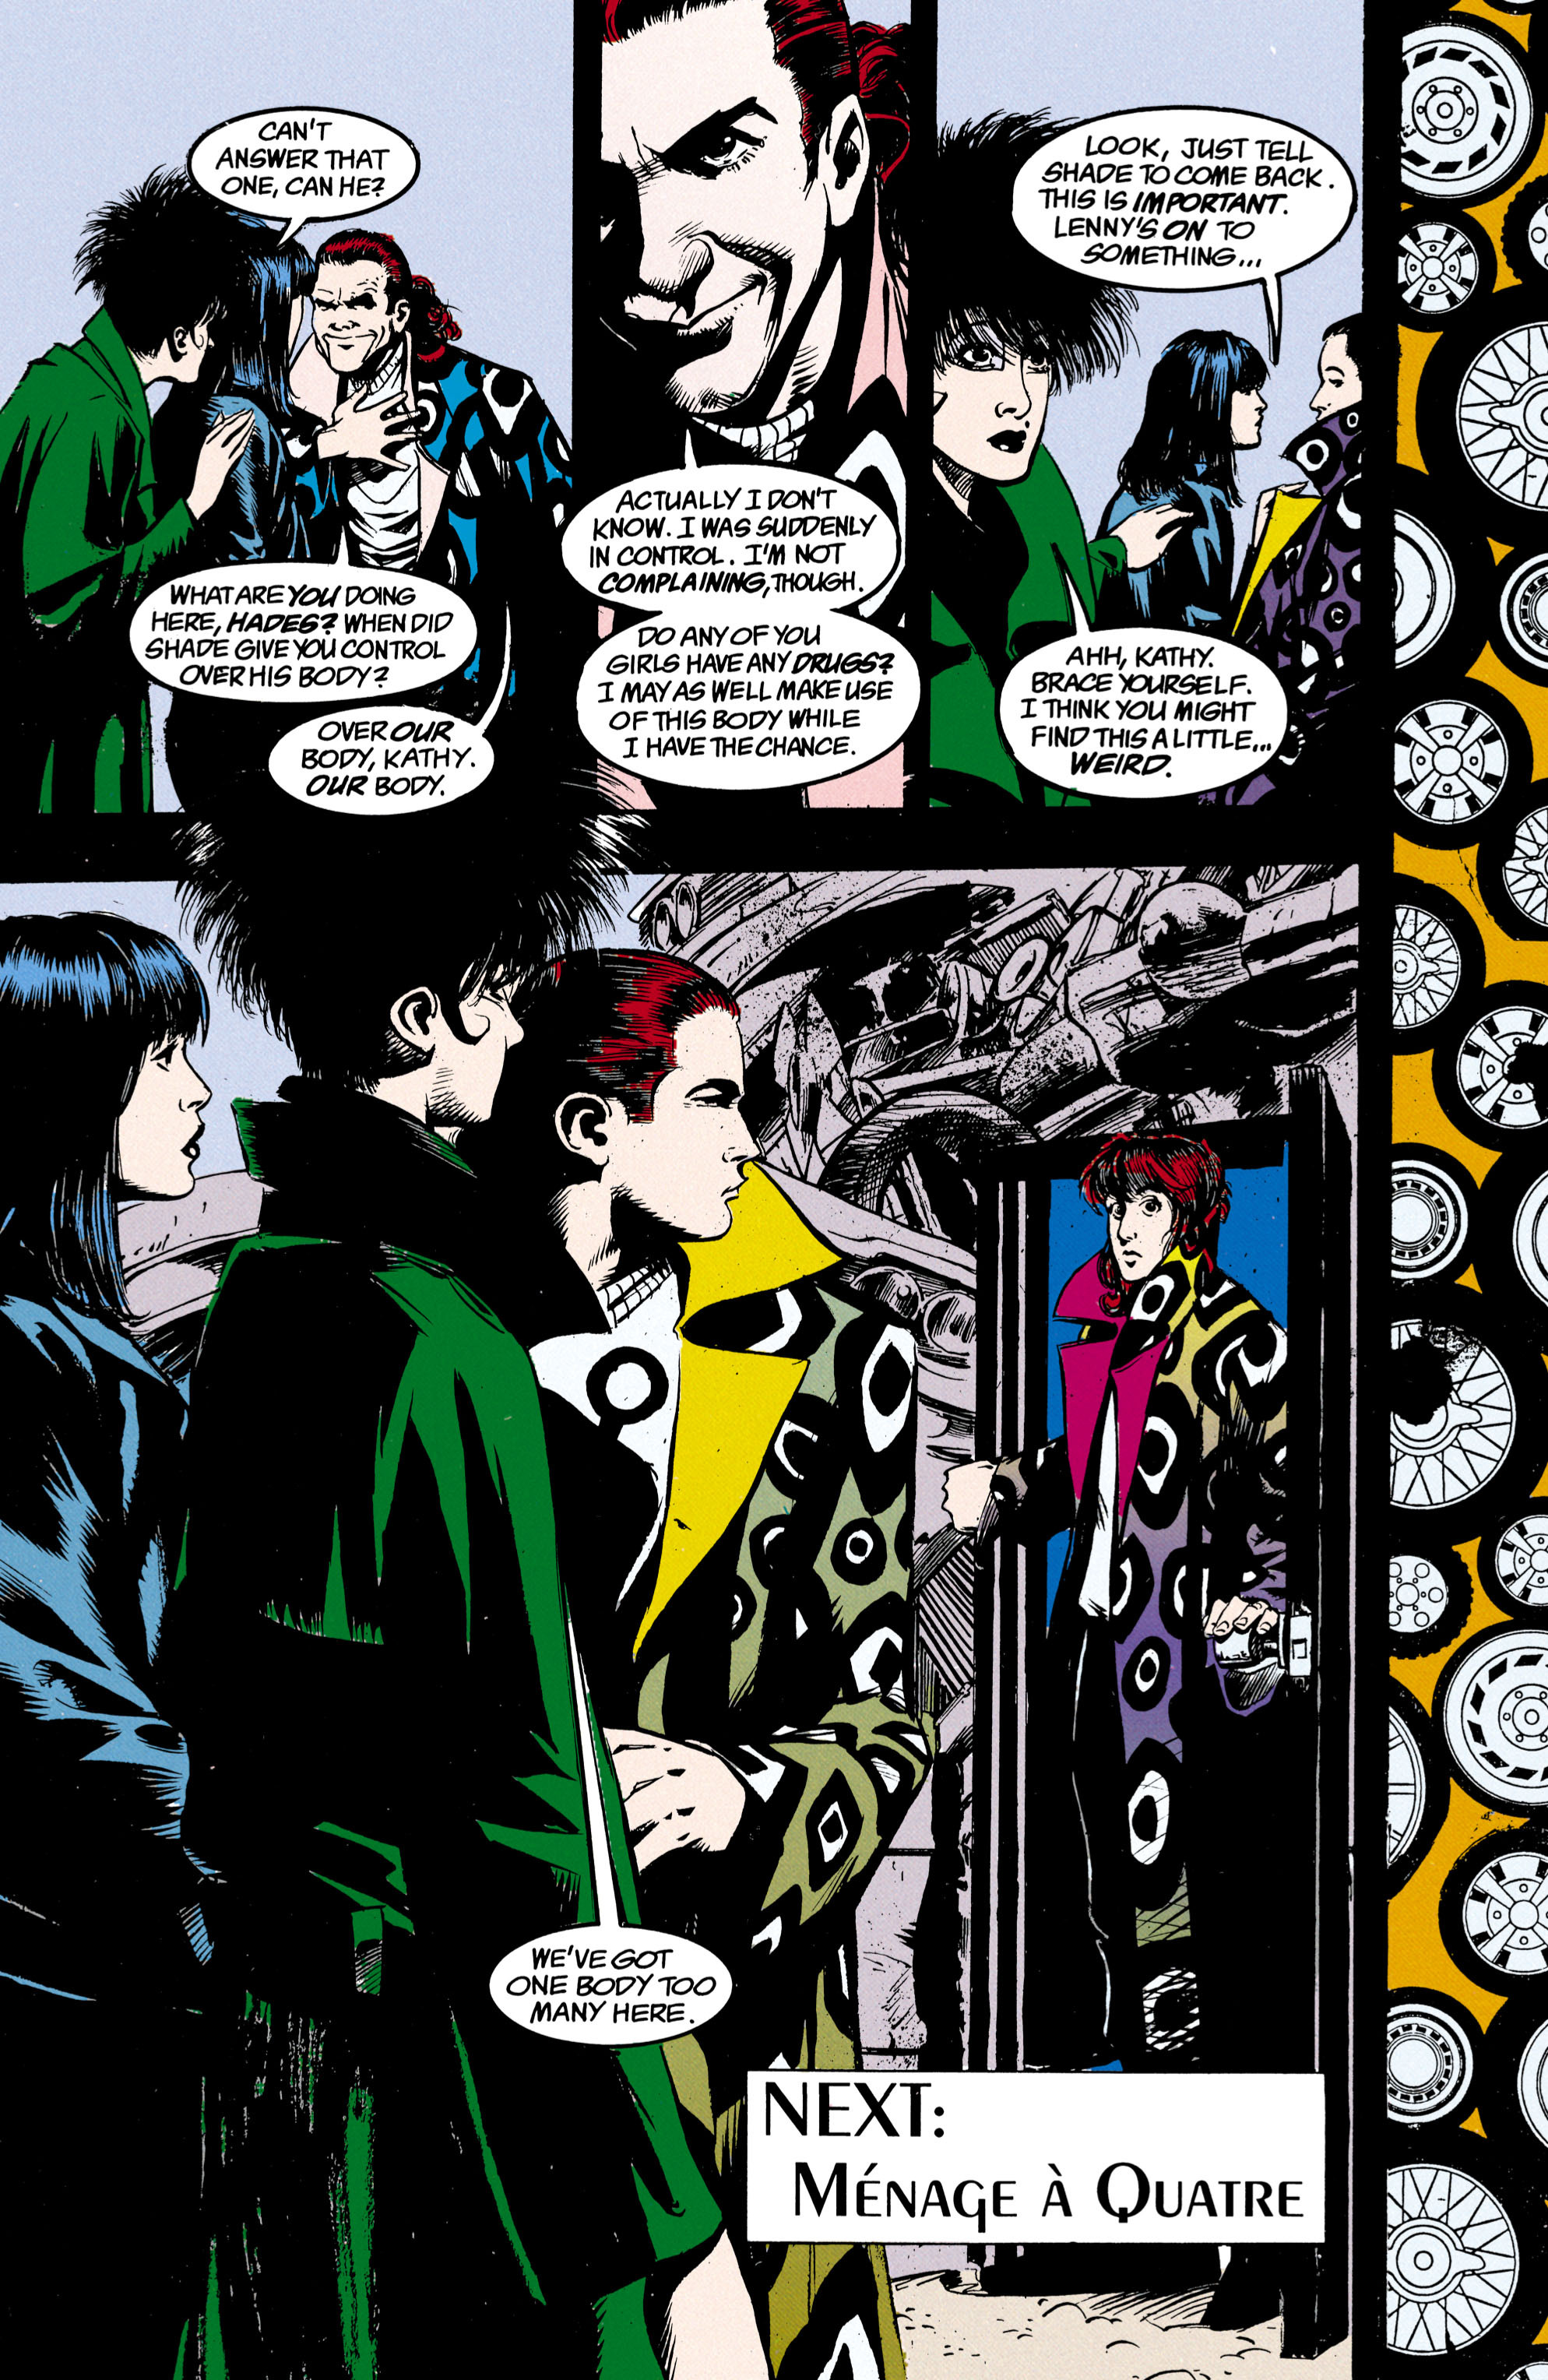 Read online Shade, the Changing Man comic -  Issue #23 - 25